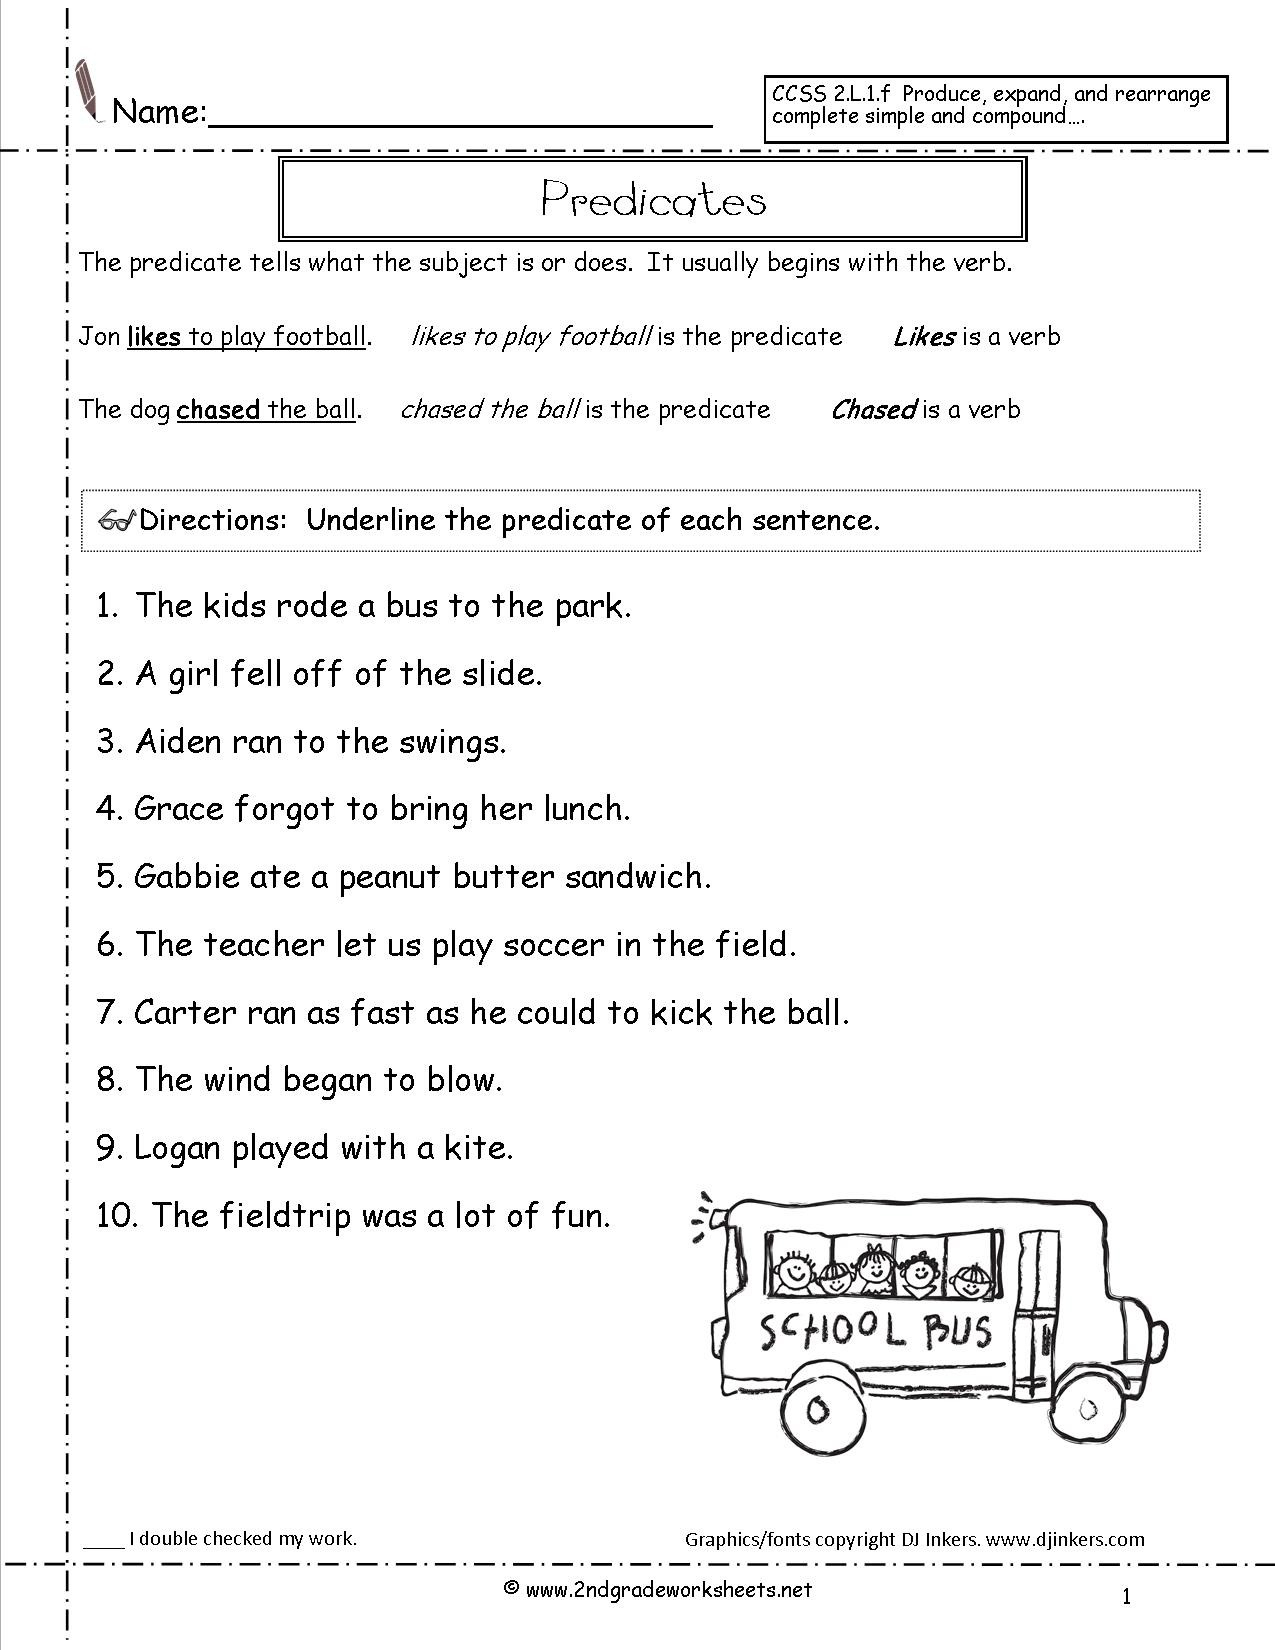 Sentence Correction Worksheets 2Nd Grade To Download Free - Math - Free Printable Sentence Correction Worksheets